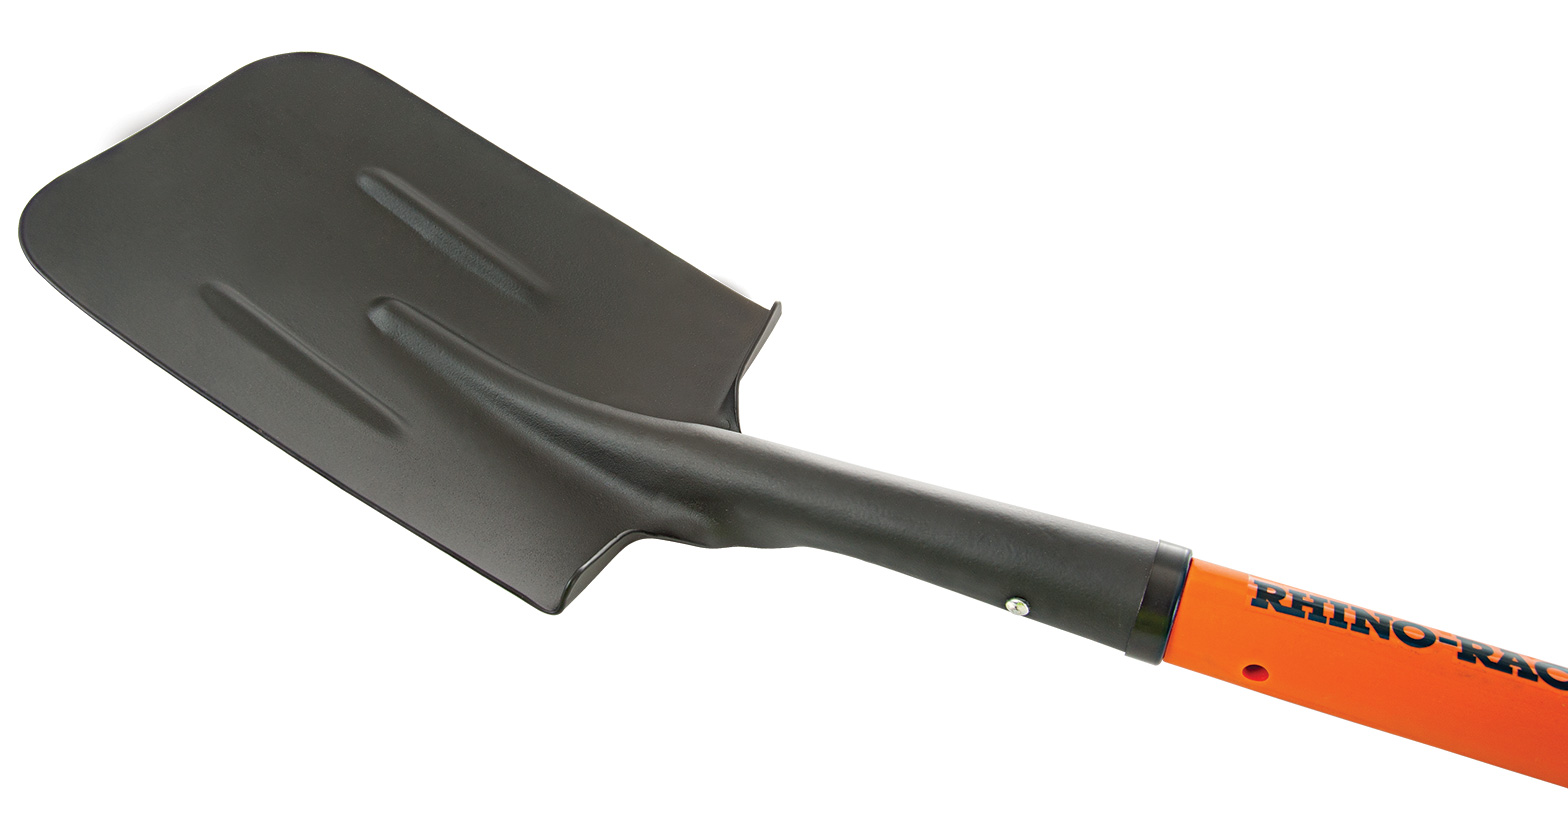 Rhino-Rack Shovel